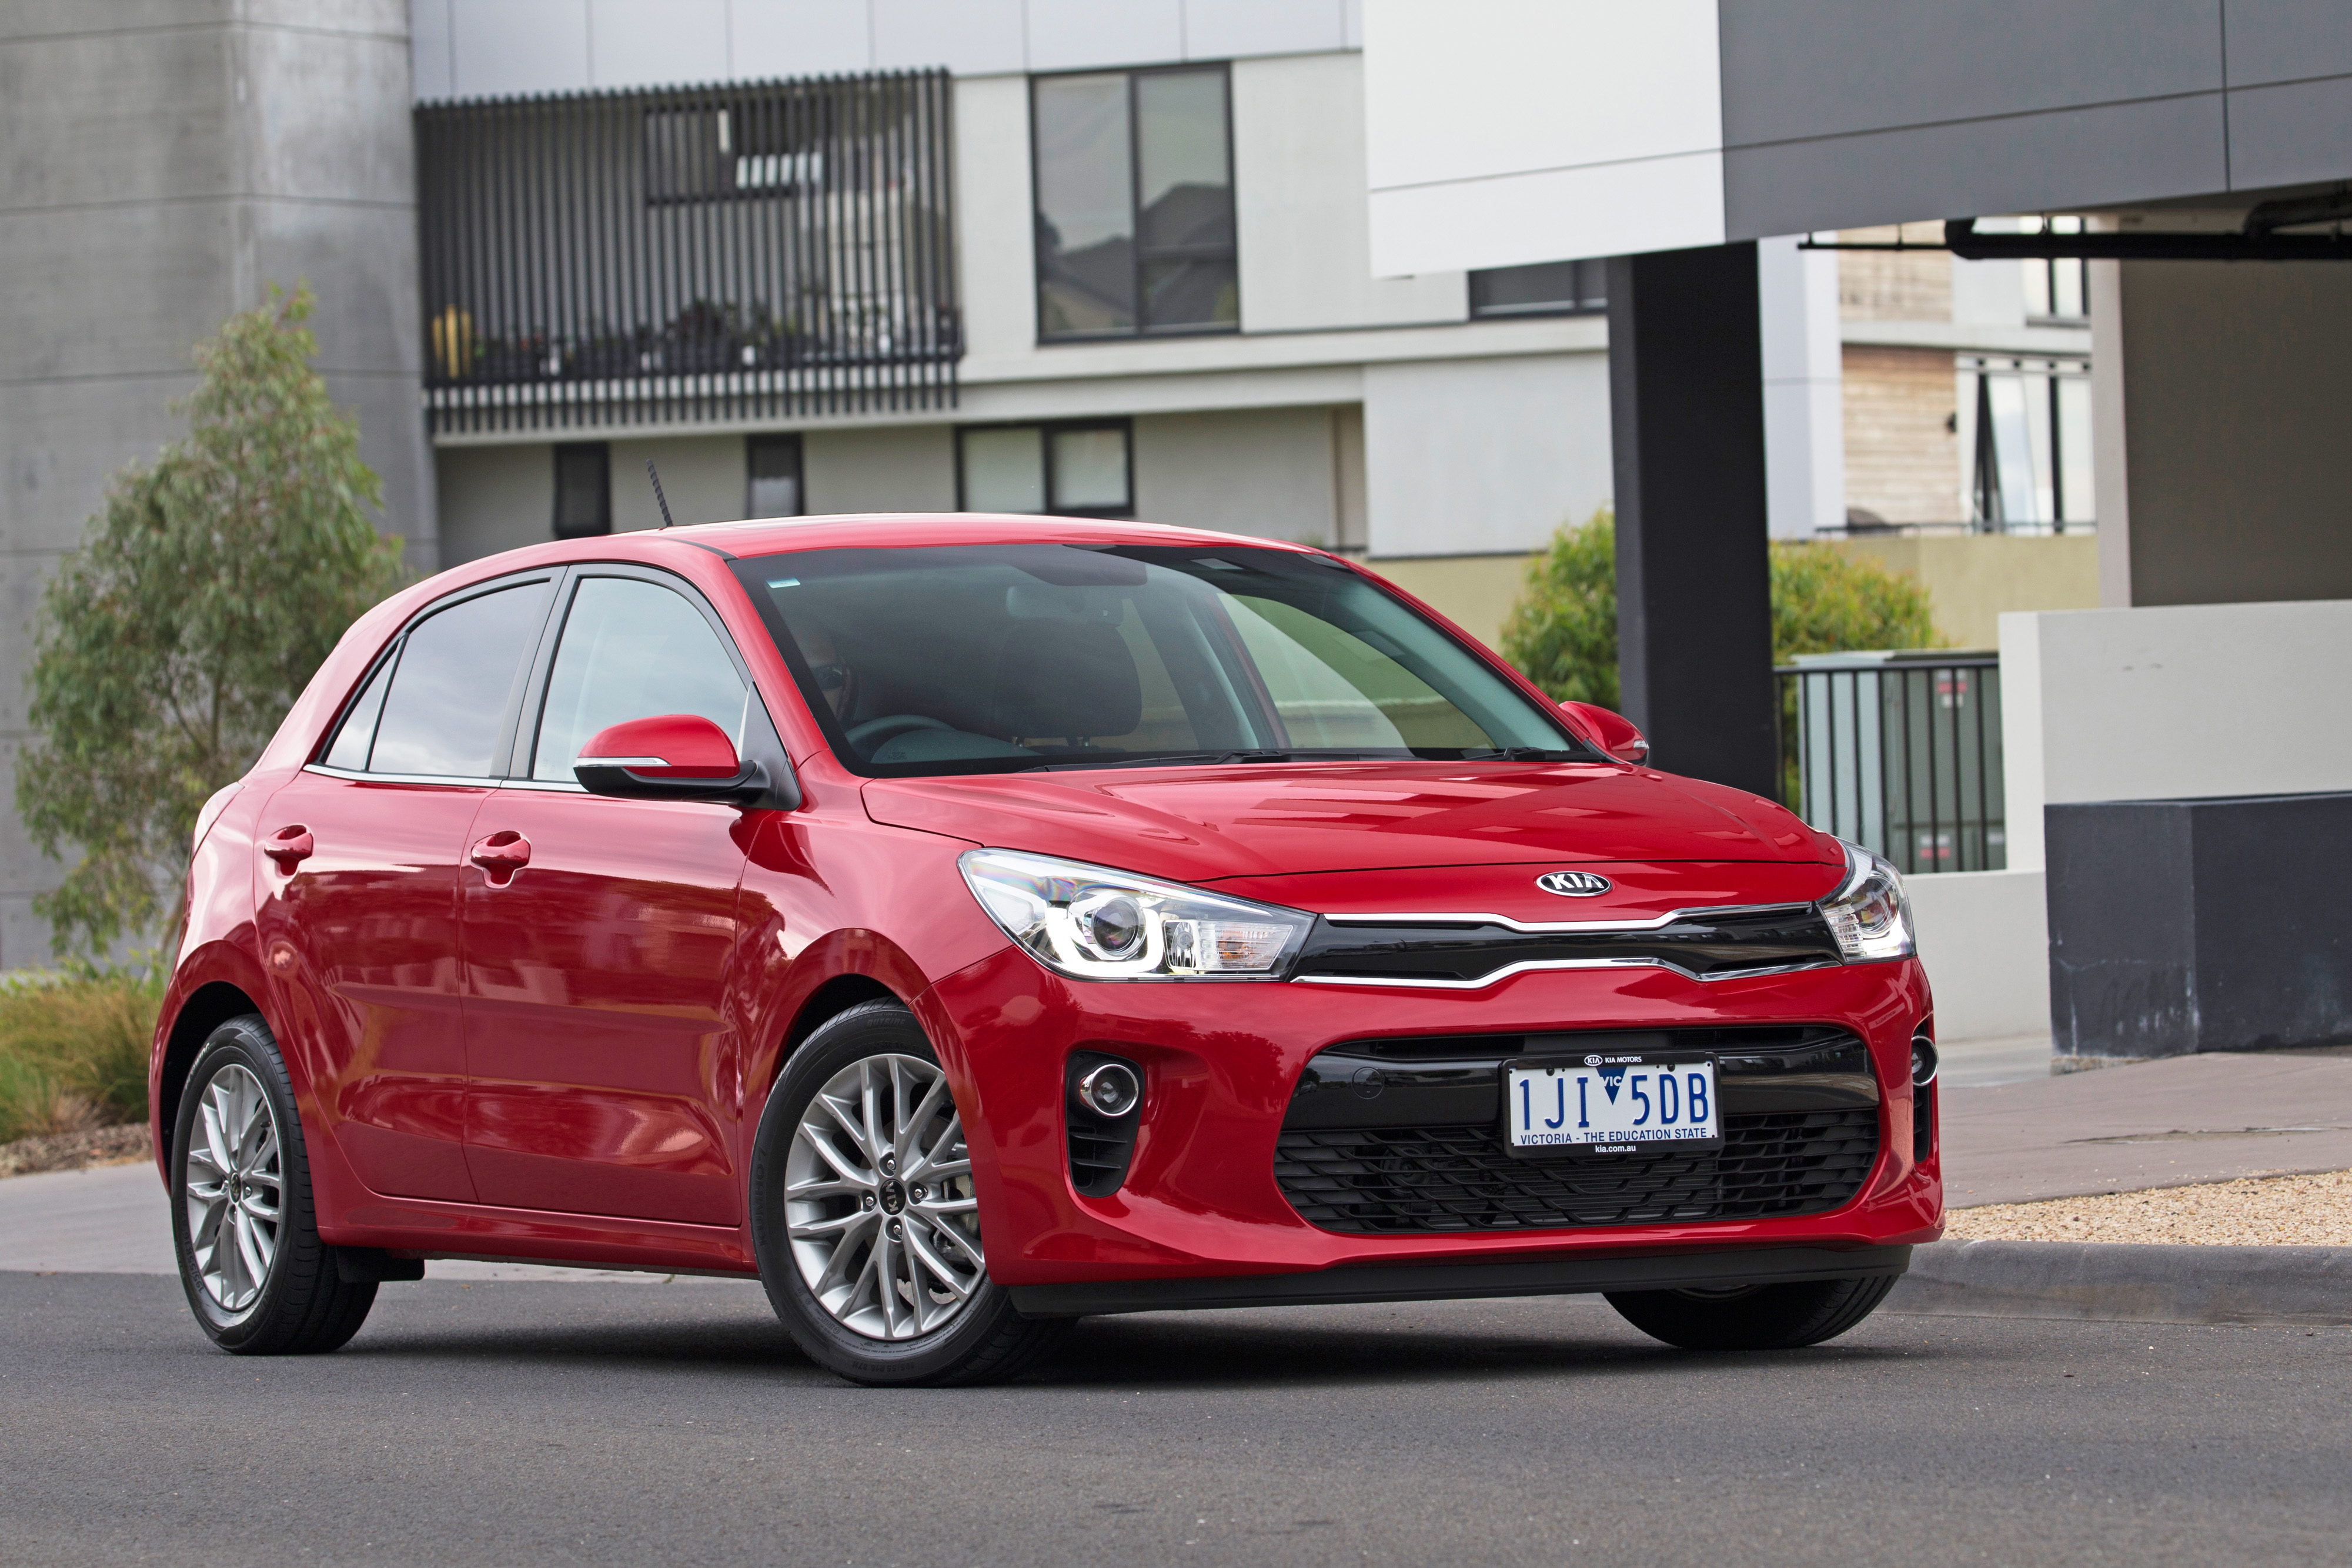 KIA Rio: latest effort not so grand